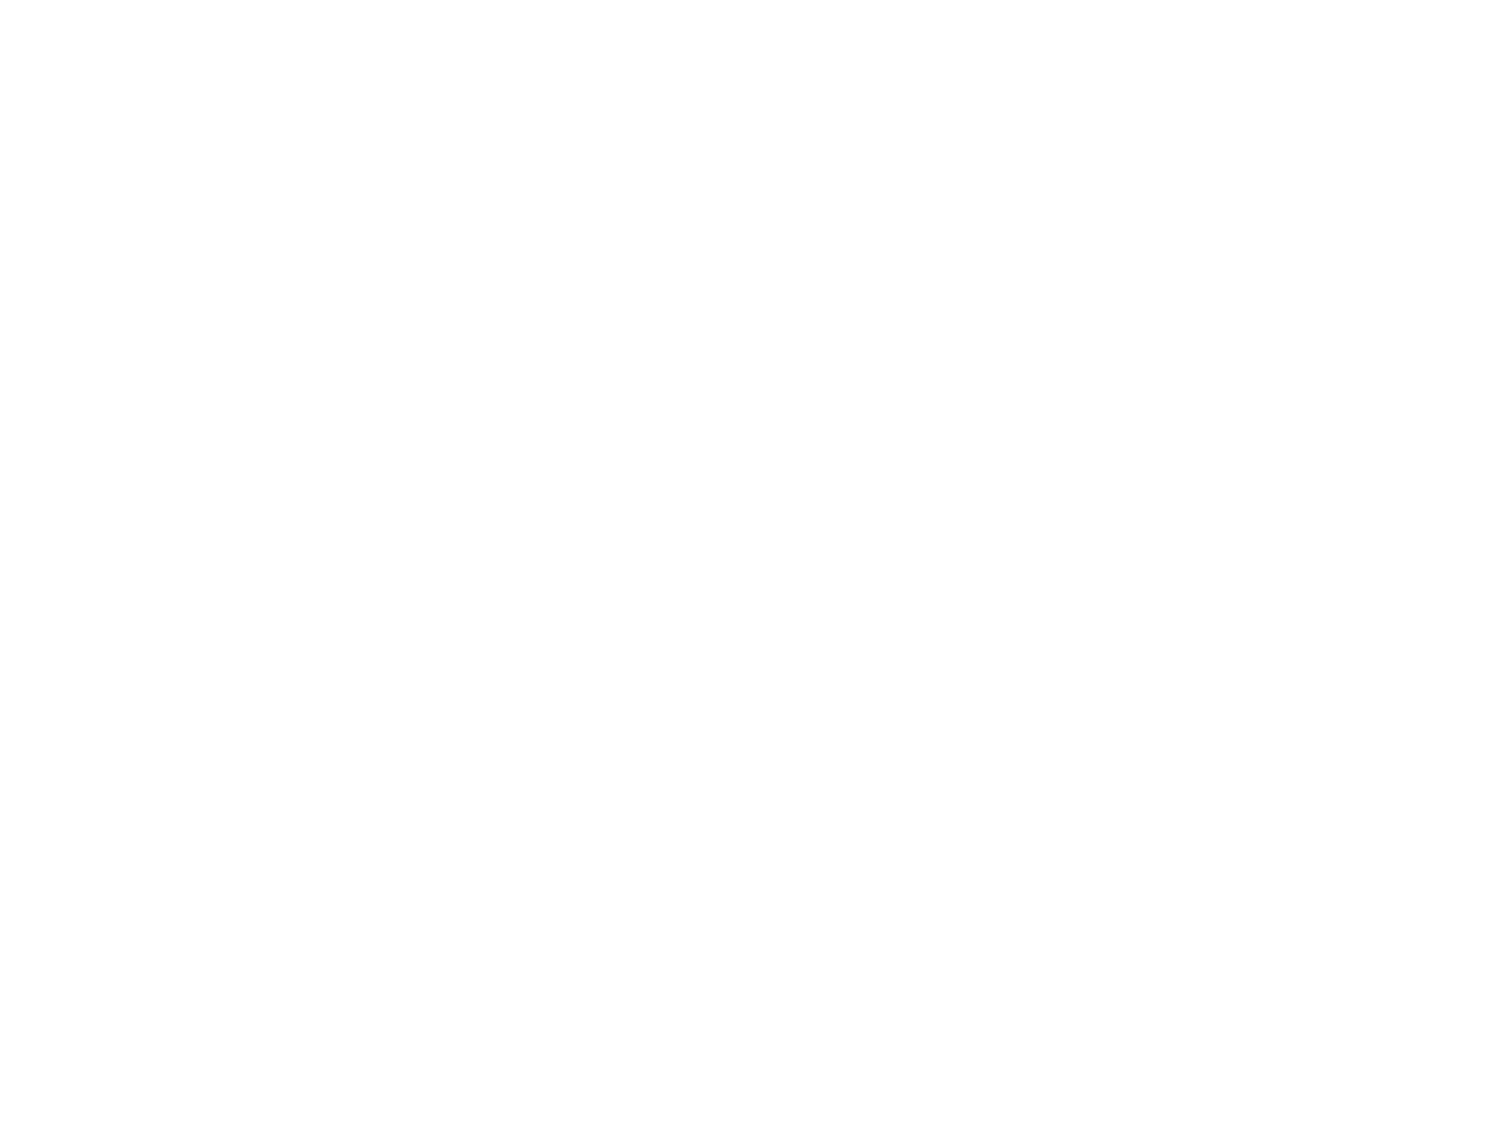 Freelance Bow Ties